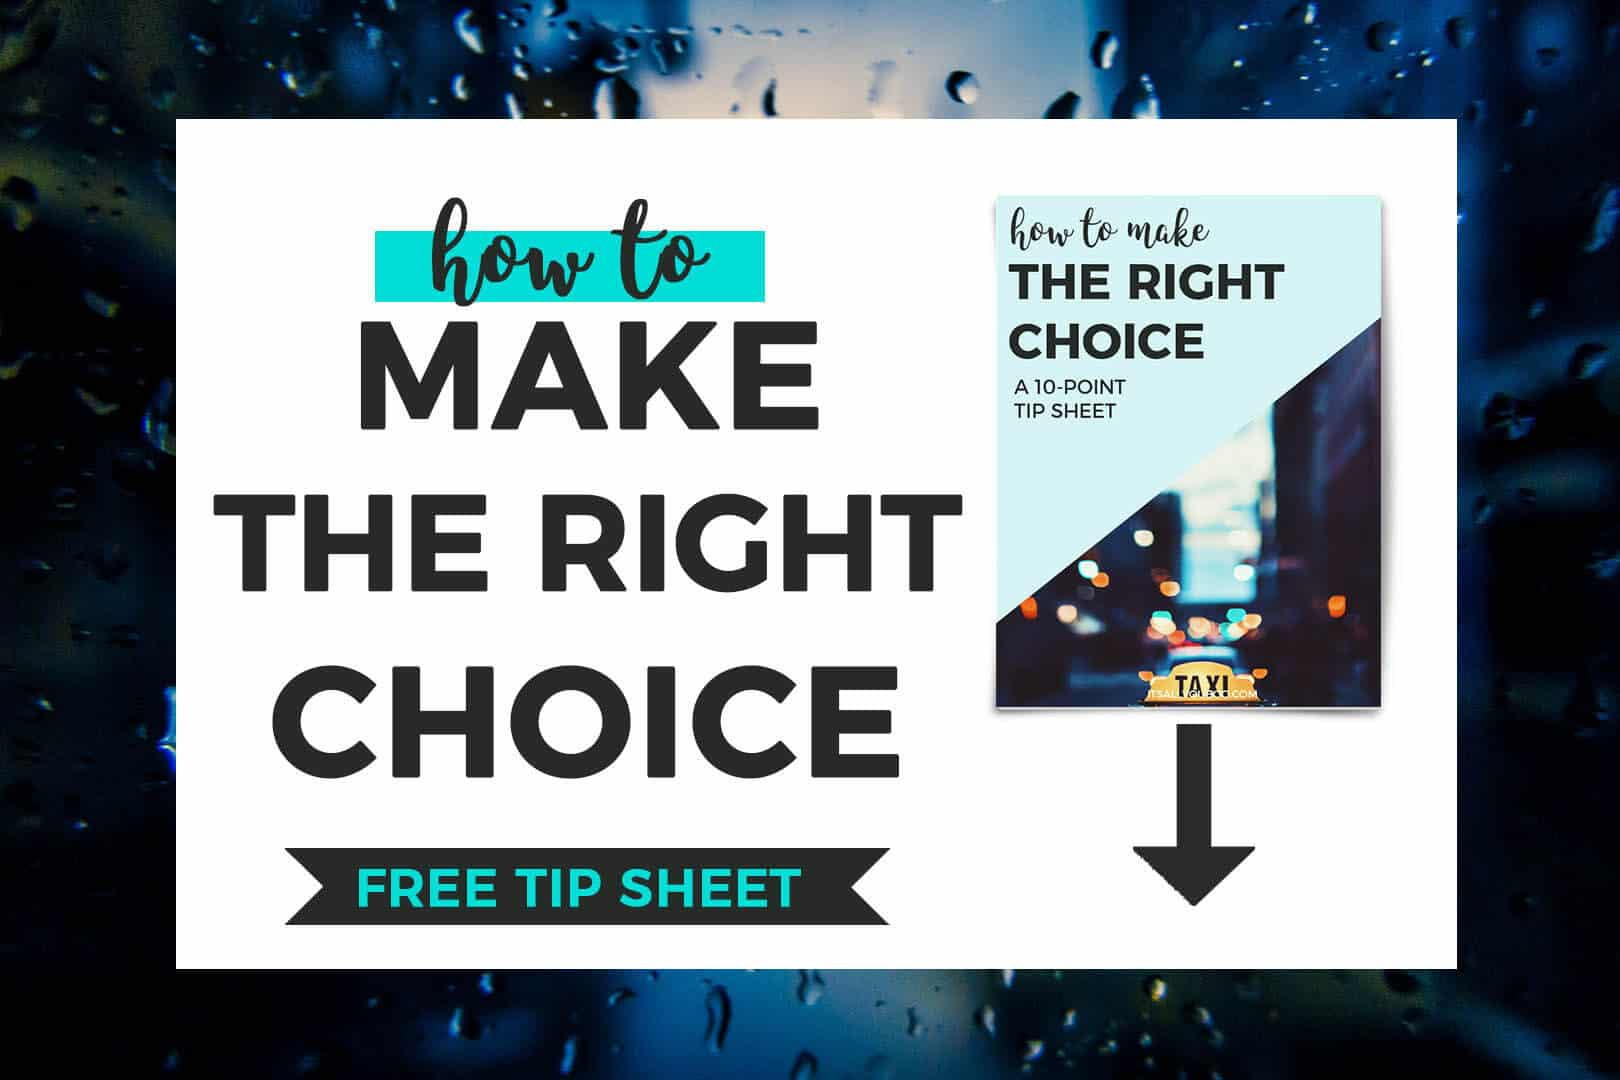 How to make the right choice 22